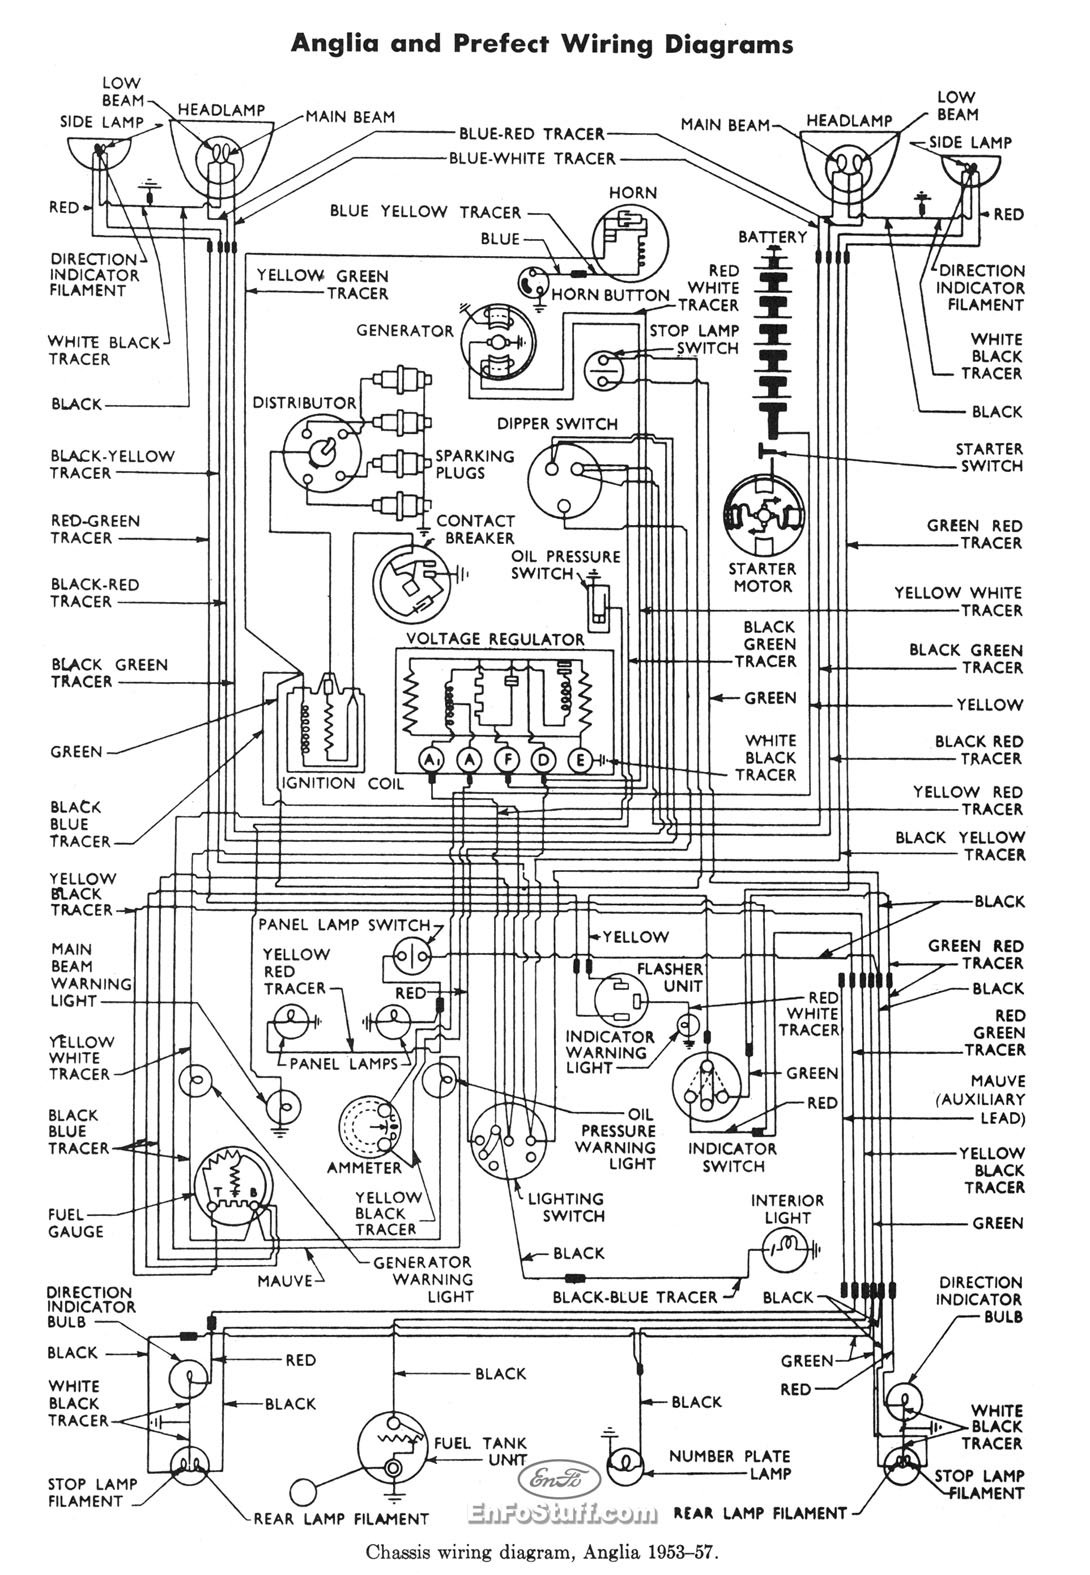 ford anglia 1953 57 wiring diagram wiring diagram for ford anglia 1953 57 53 ford wiring diagram at bayanpartner.co